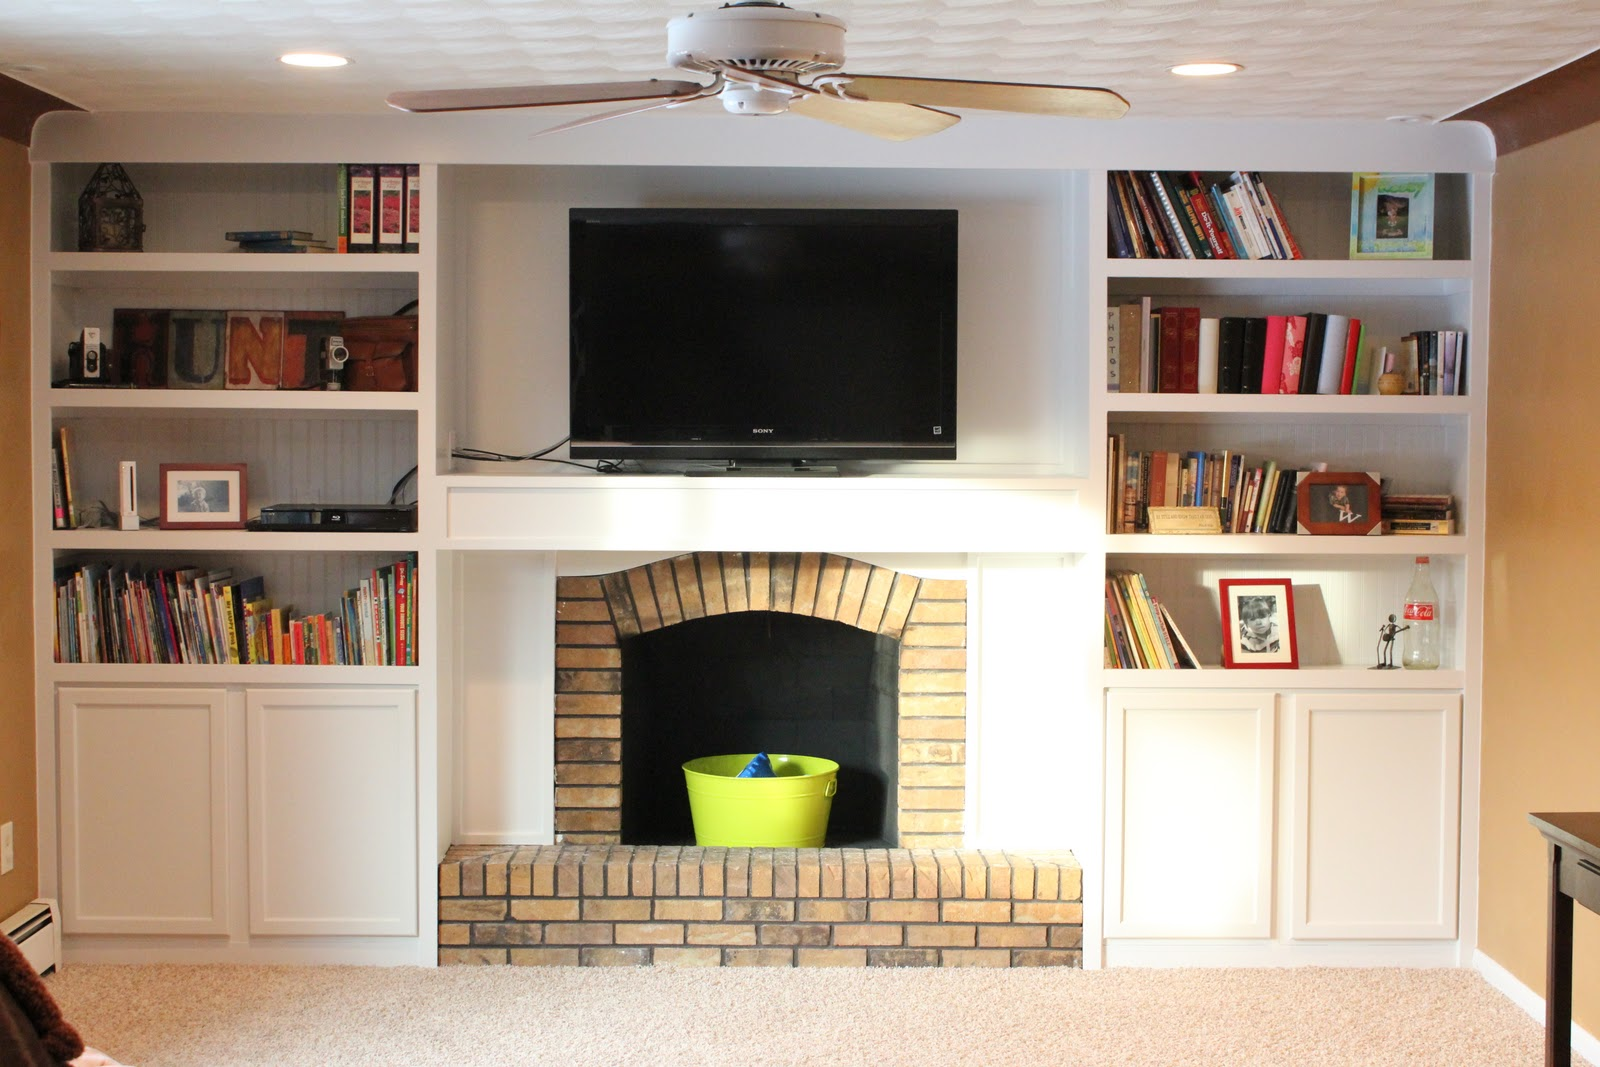 Exceptional Fireplace Makeover With Builtins Made From Stock Cabinetry (1)